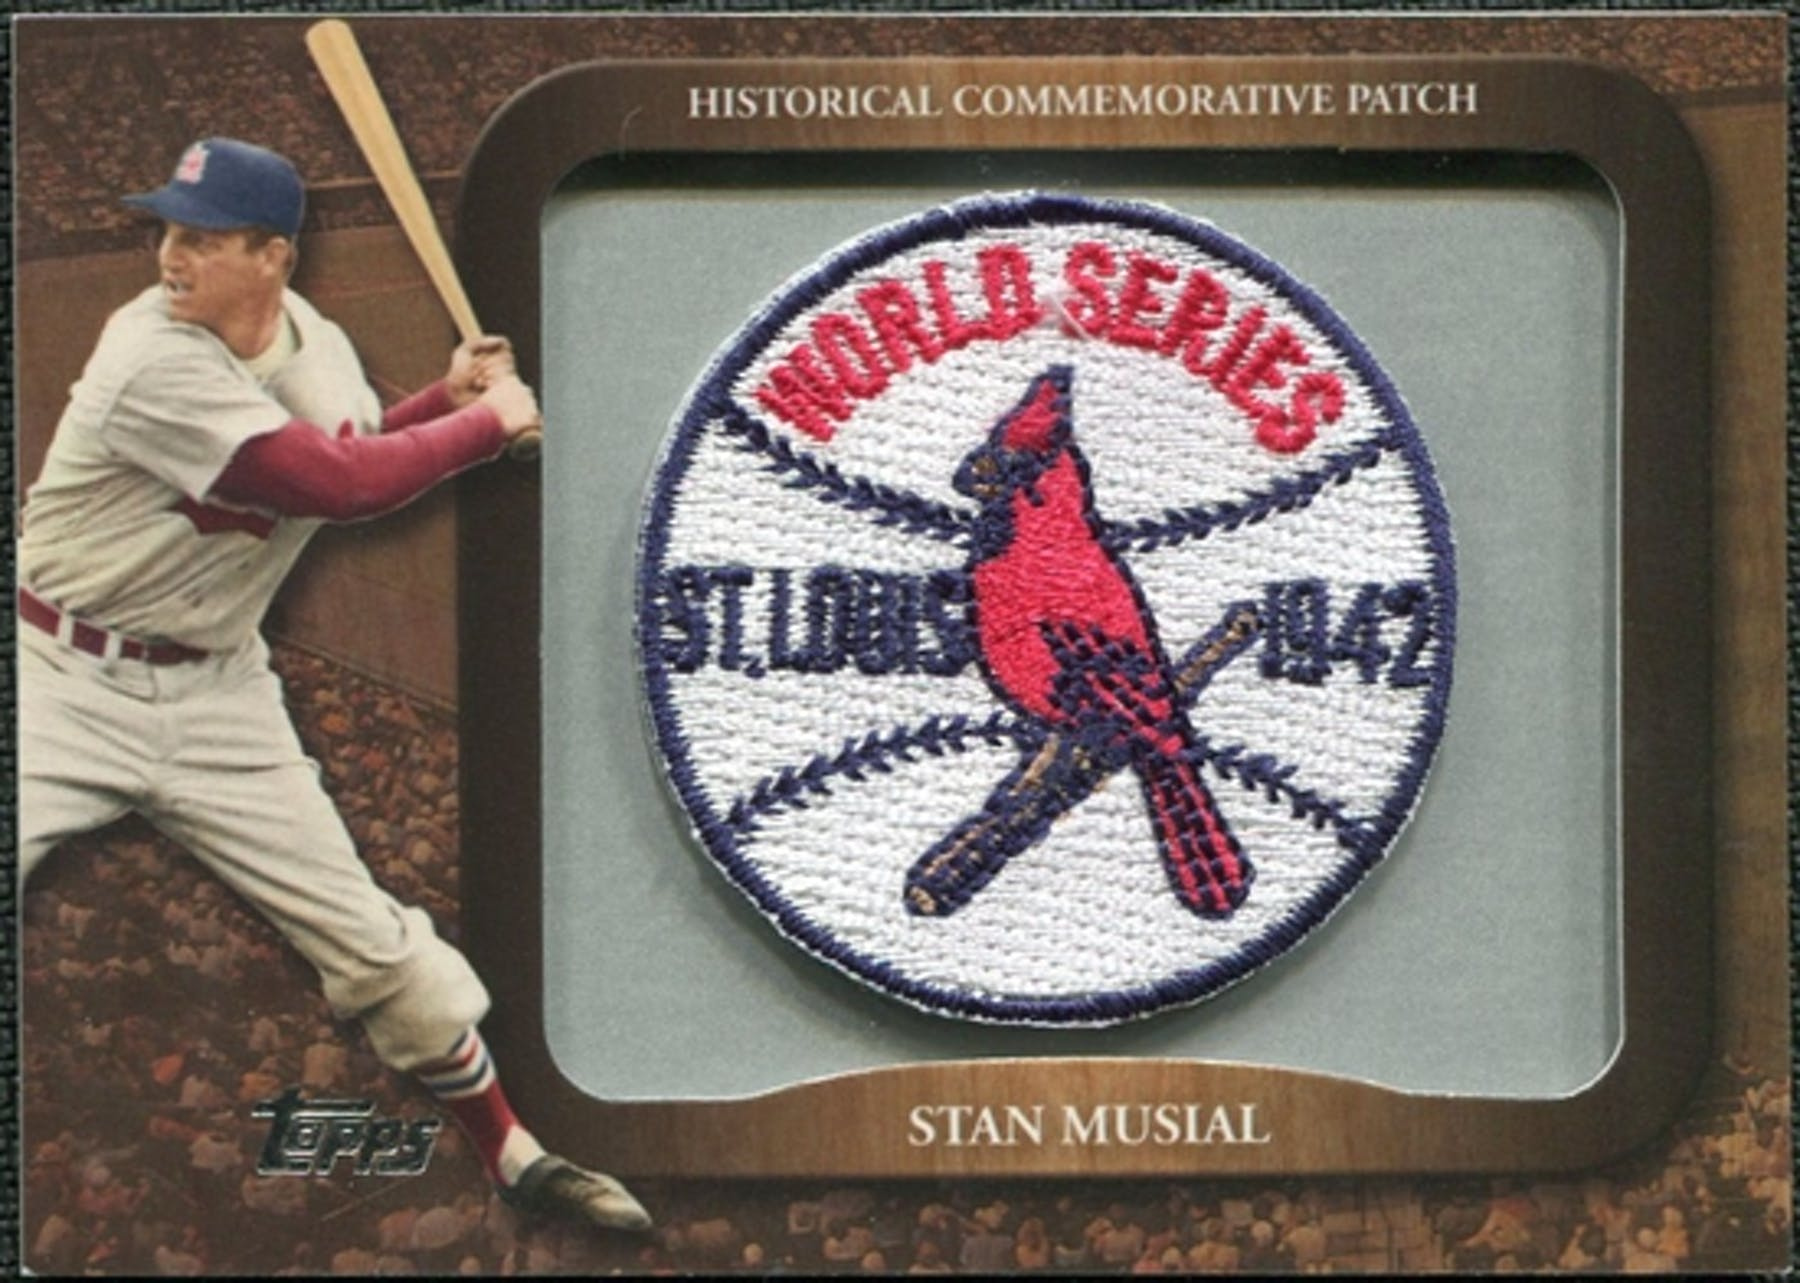 2009 topps legends commemorative patch #lpr107 stan musial.